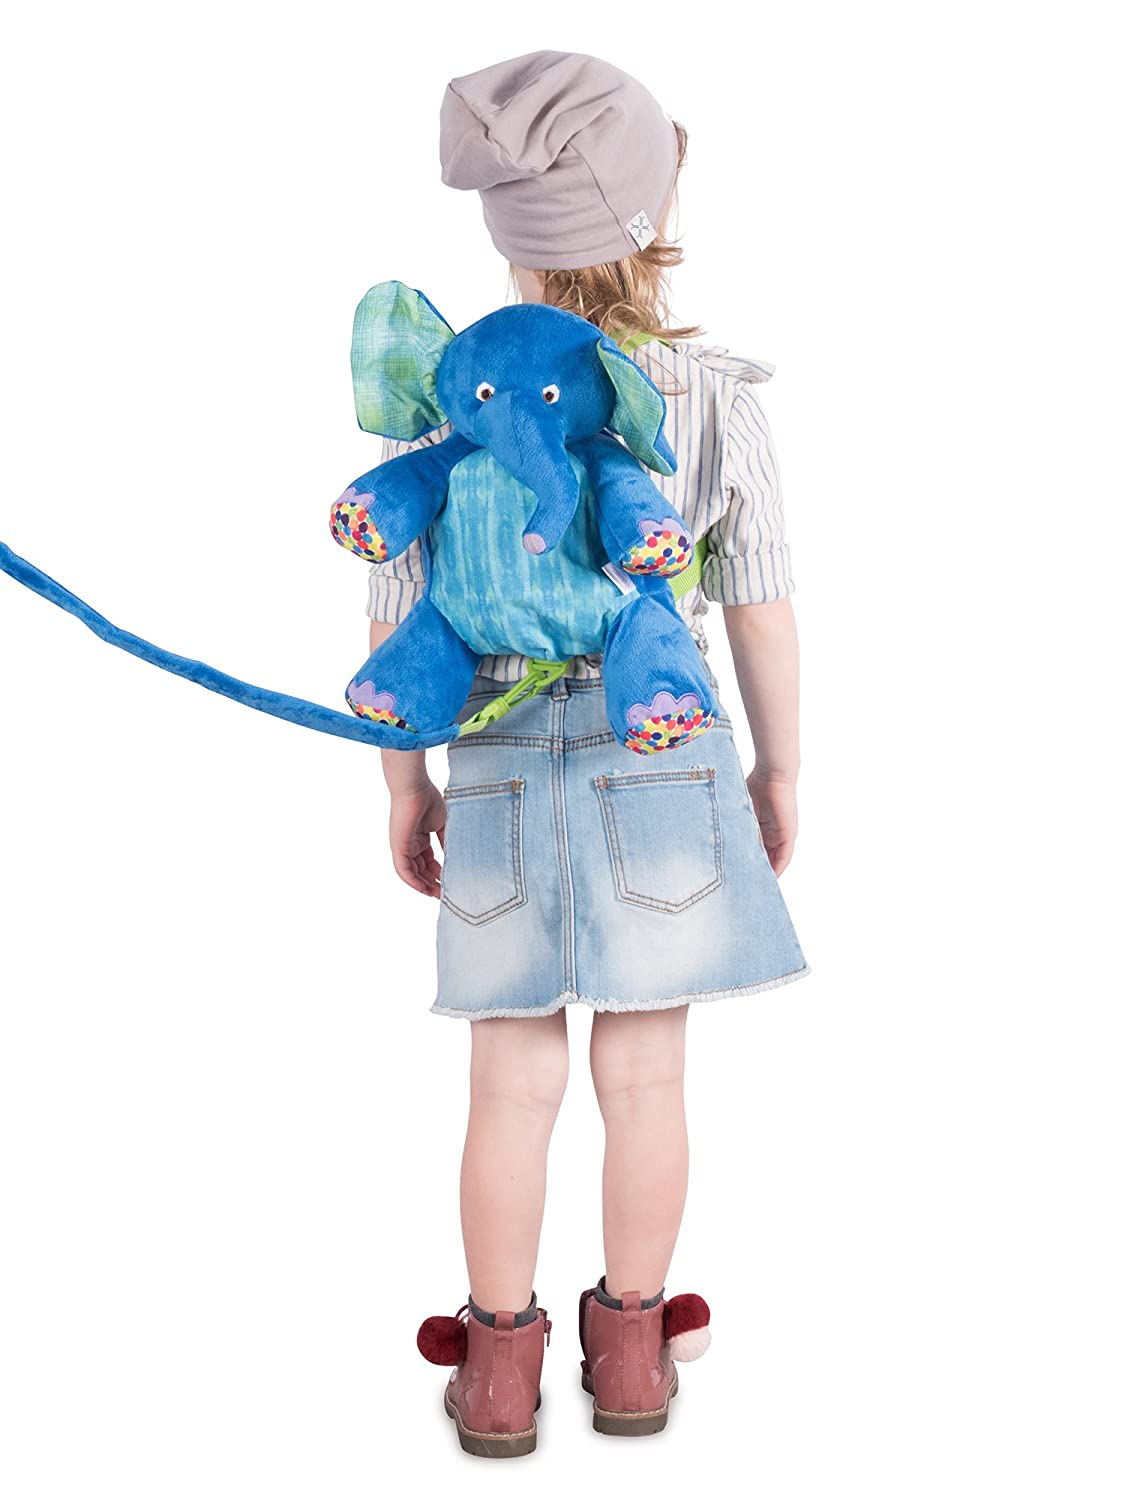 Eric Carle 2-in-1 Elephant Backpack Harness 70002